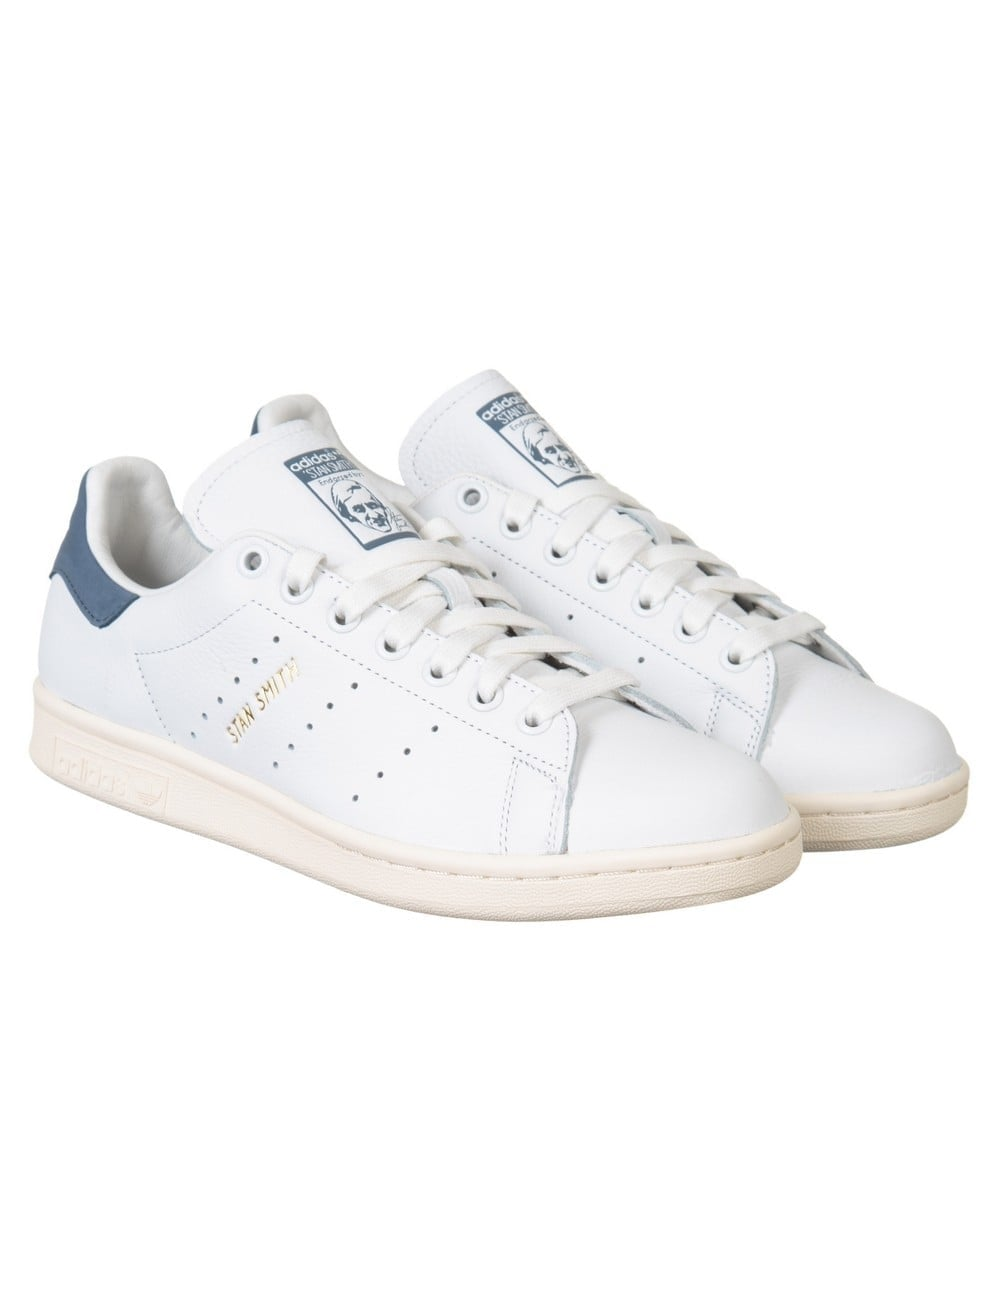 Adidas Originals Stan Smith Shoes - White Tec Ink - Trainers from ... 407e834fdb56